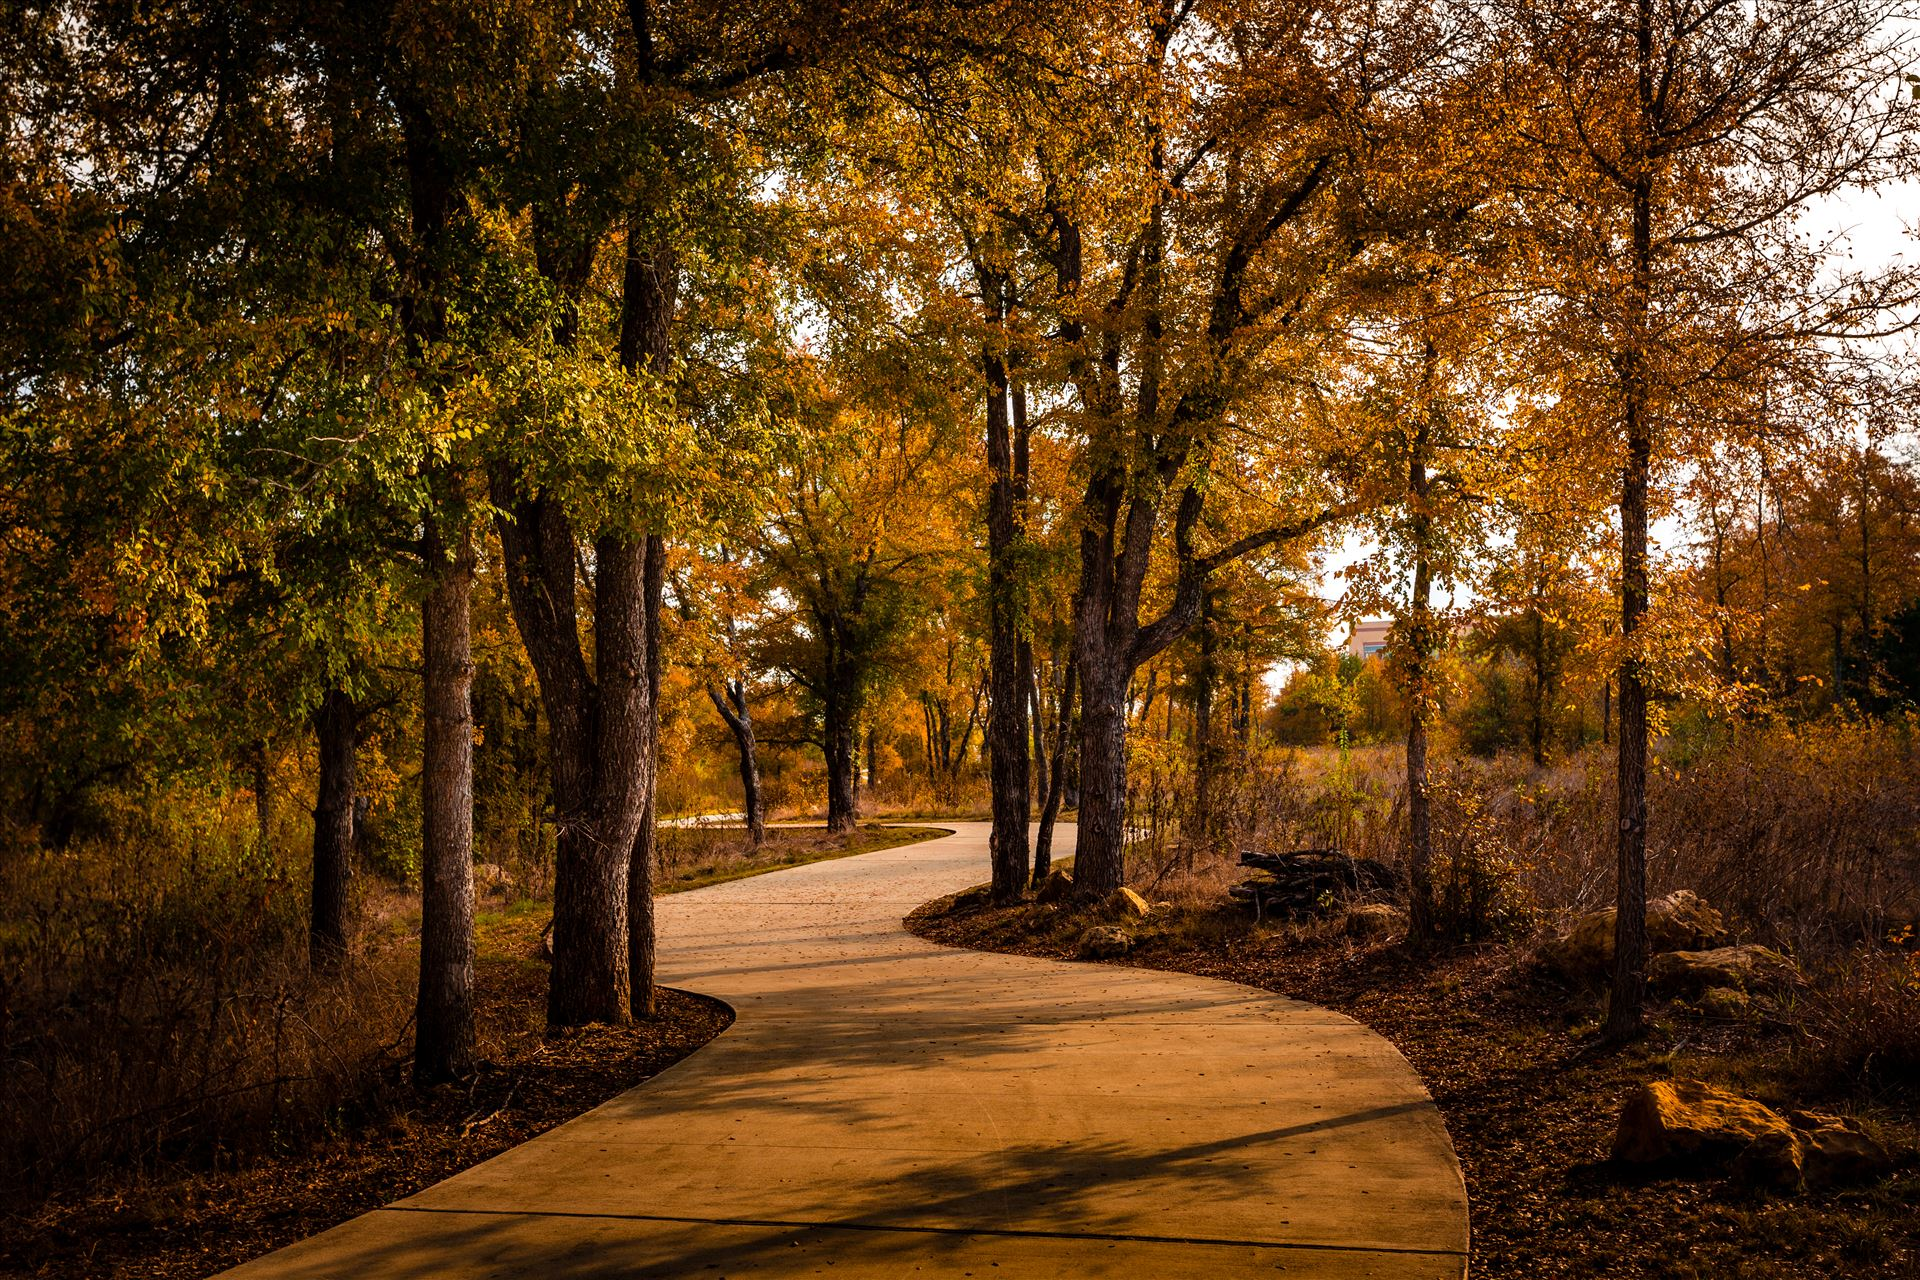 20171104_PepperCreek_047.jpg -  by Charles Smith Photography